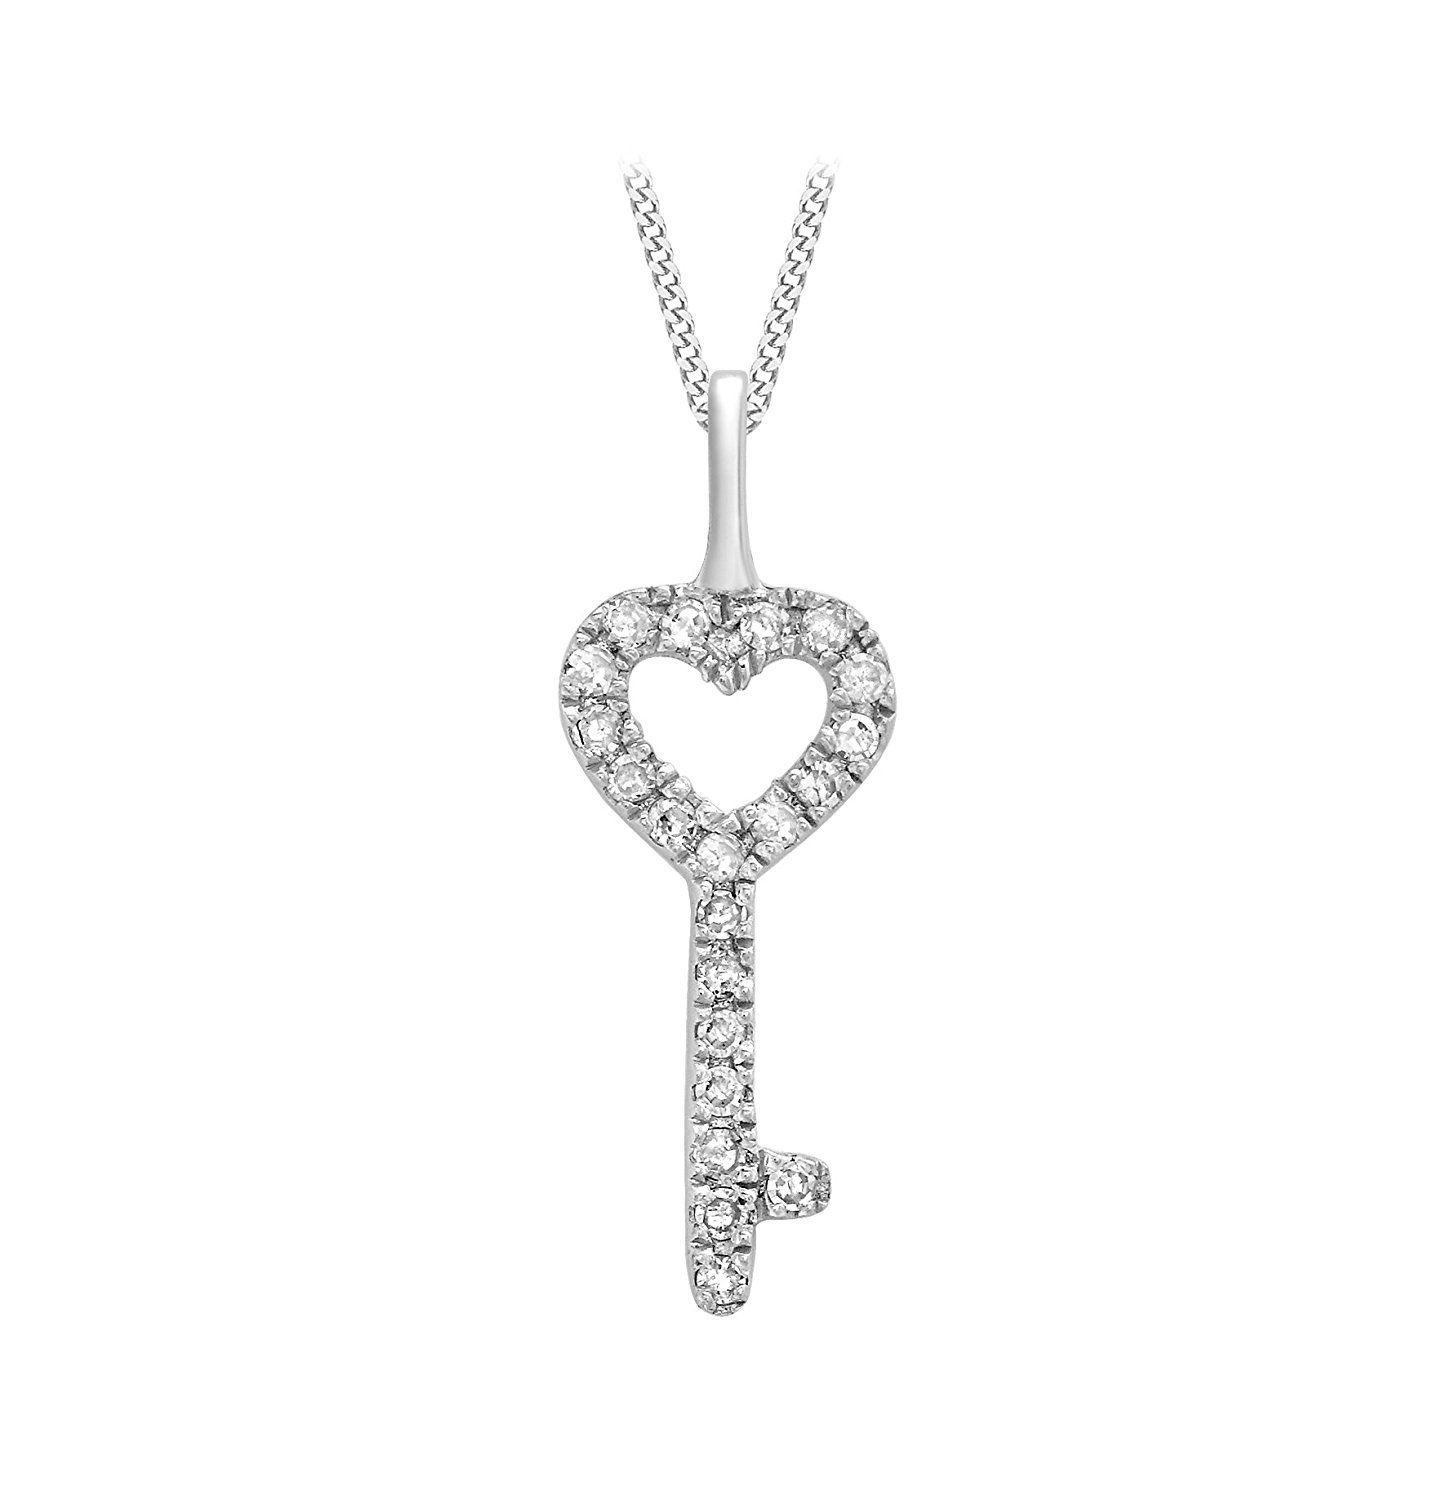 Carissima Gold 9ct White Gold Diamond and Aquamarine Heart Cross Over Pendant on Curb Chain Necklace of 46cm/18 YpaKw